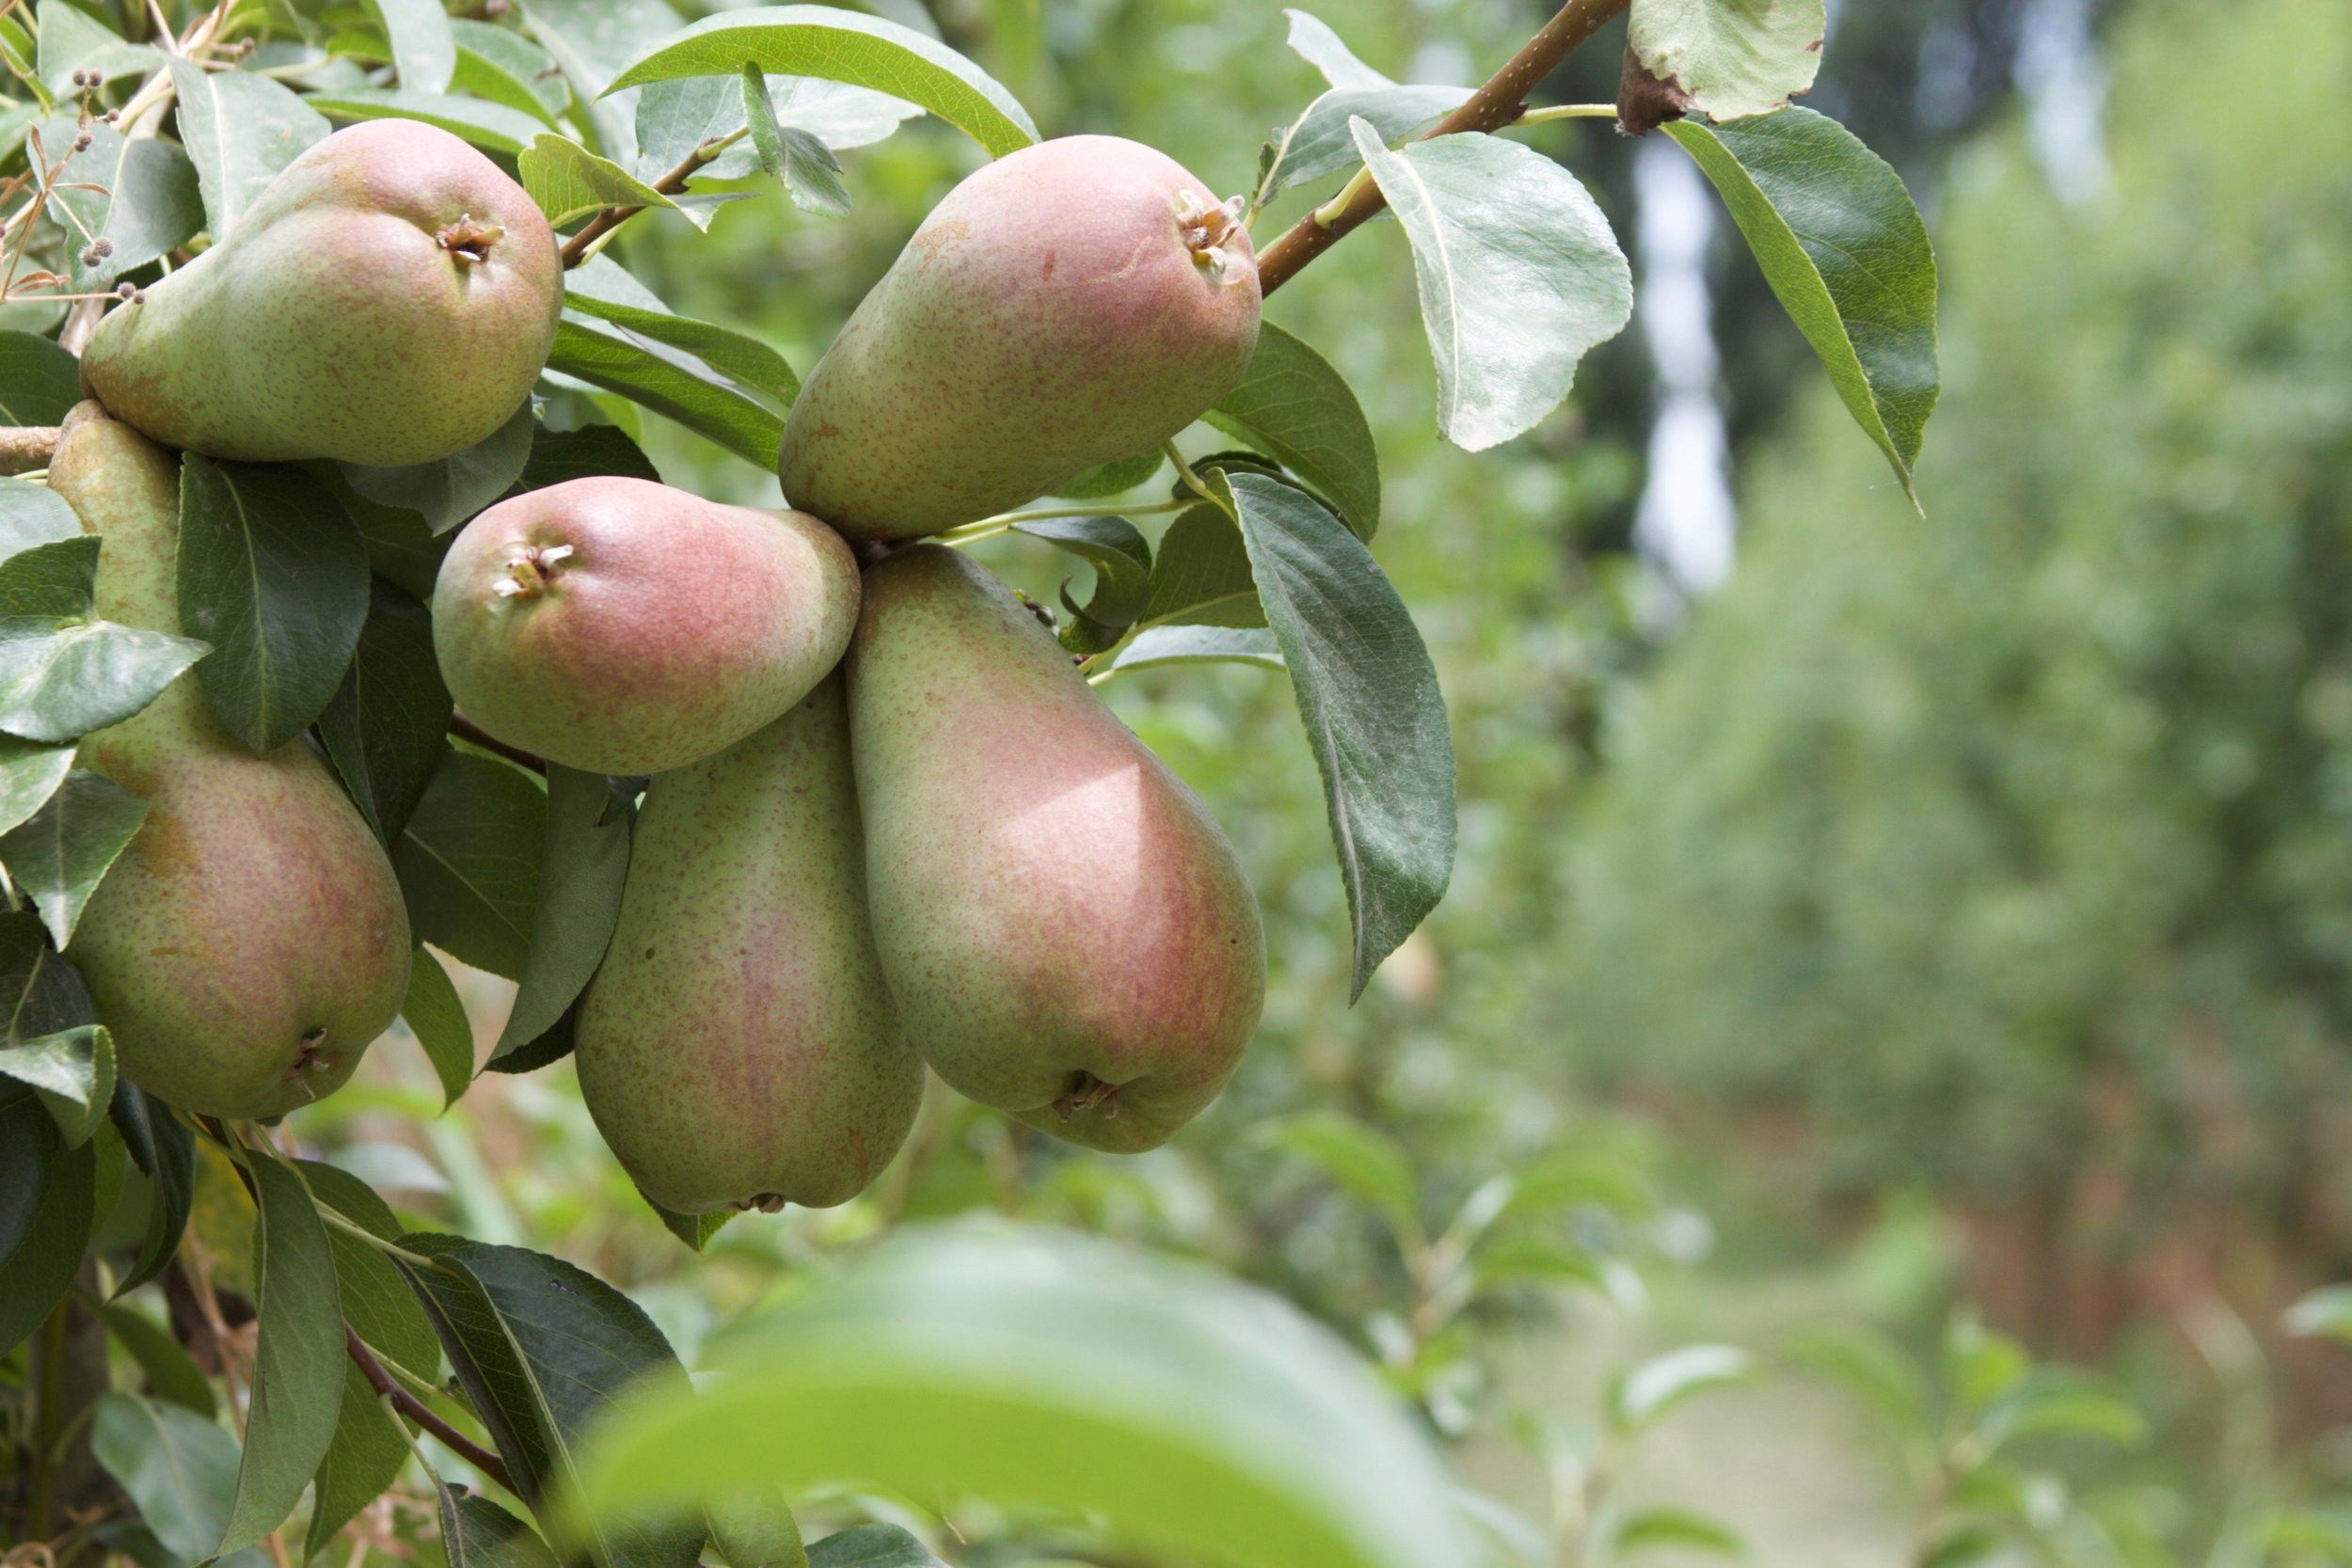 Organic fruit is emerging as a dignified livelihood for many farmers in Patagonia.